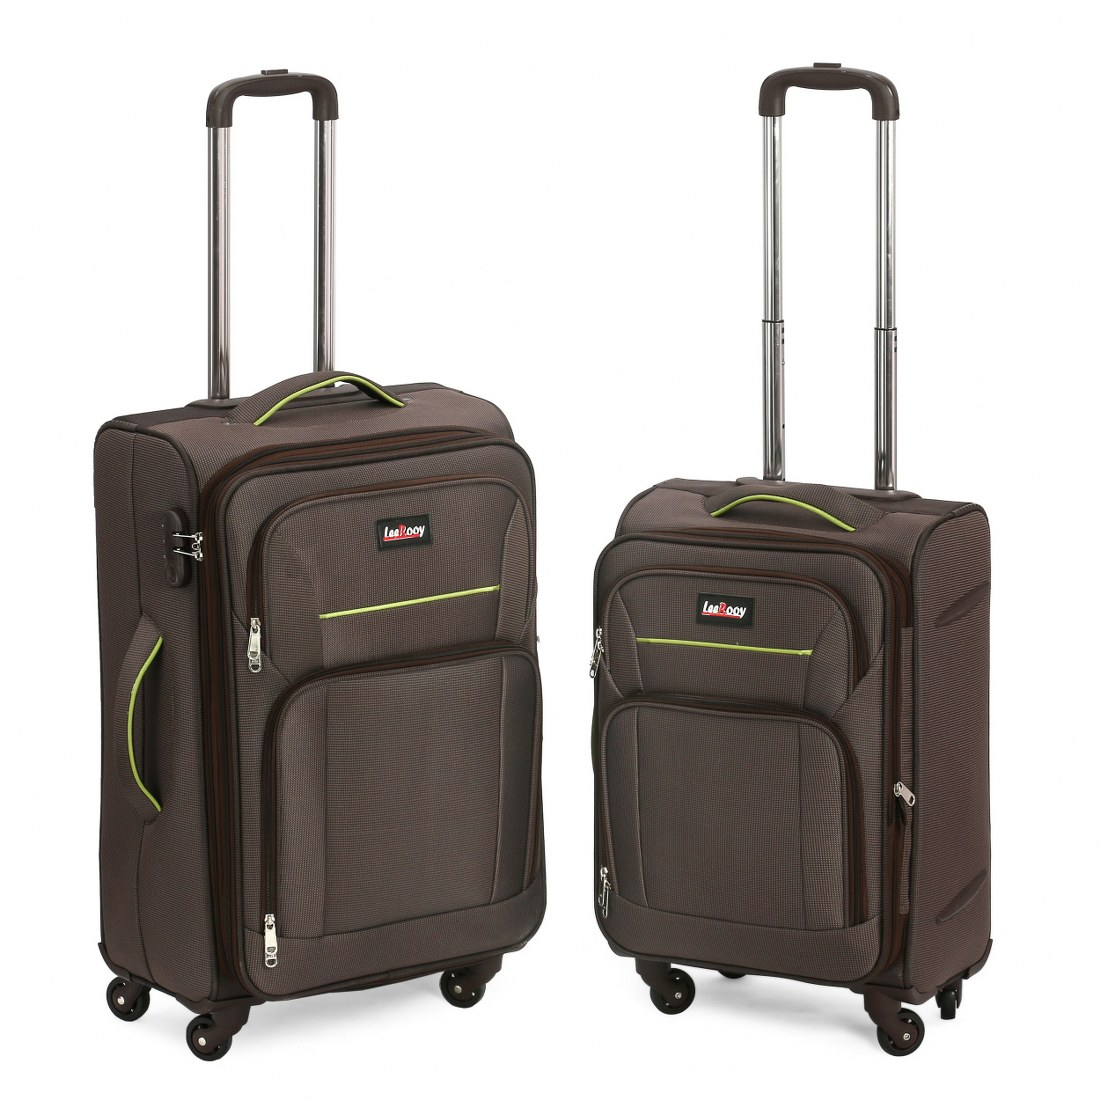 Brown colour 2 Front Pockets 4 Wheel Trolley Luggage Bag  Combo Set of 2  Polyester Suitcase/Luggage/Trolly Bags